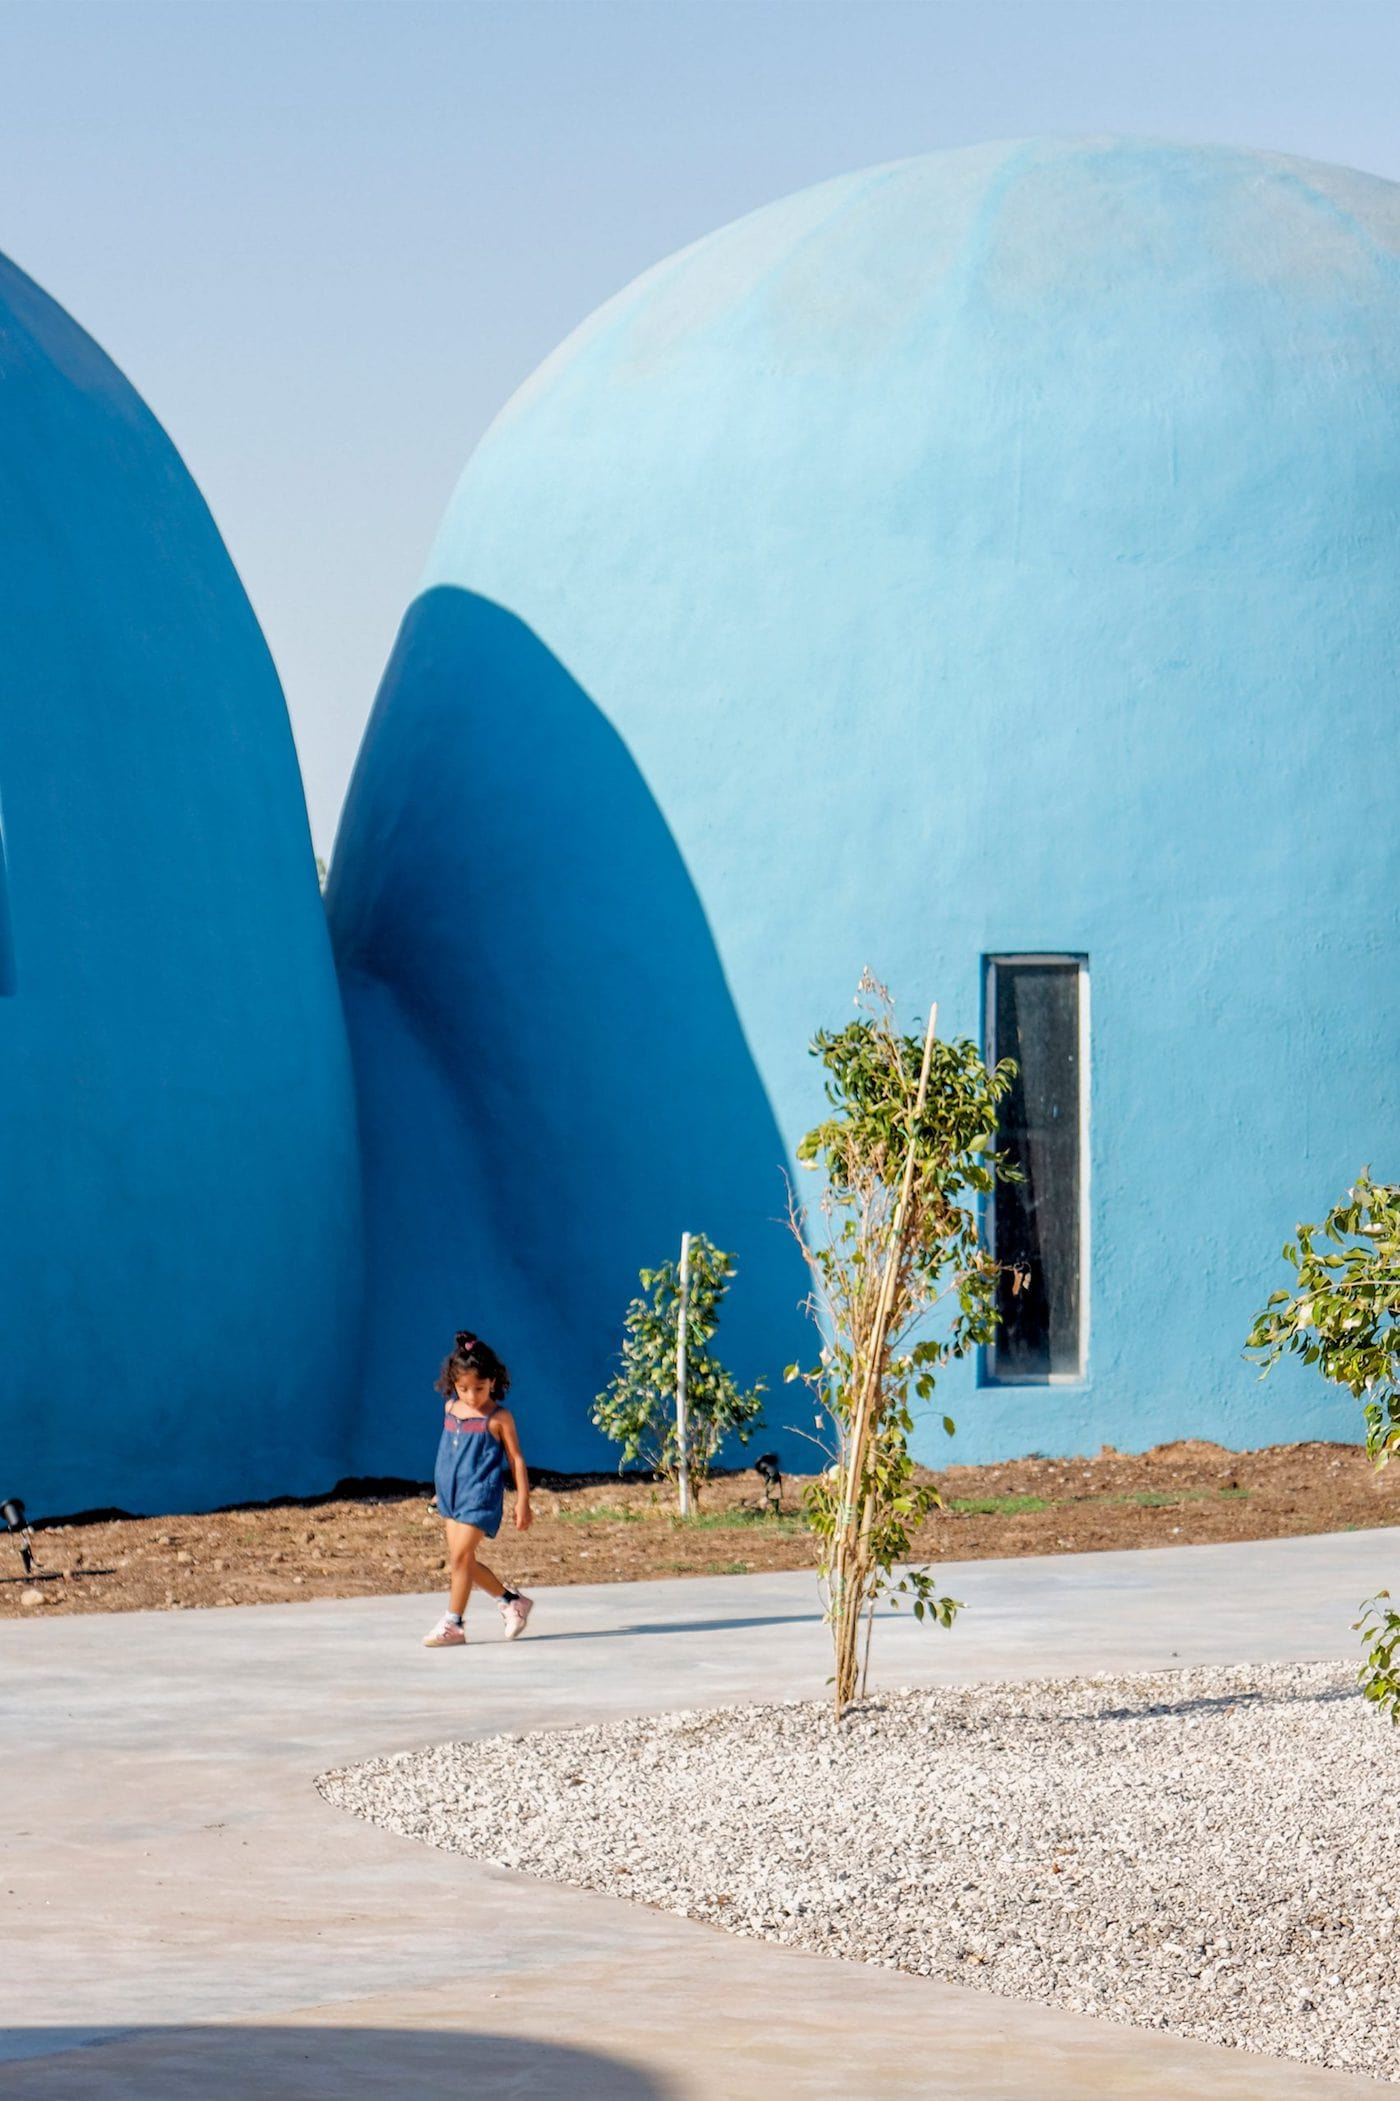 Girl walking in front of blue rammed earth dome